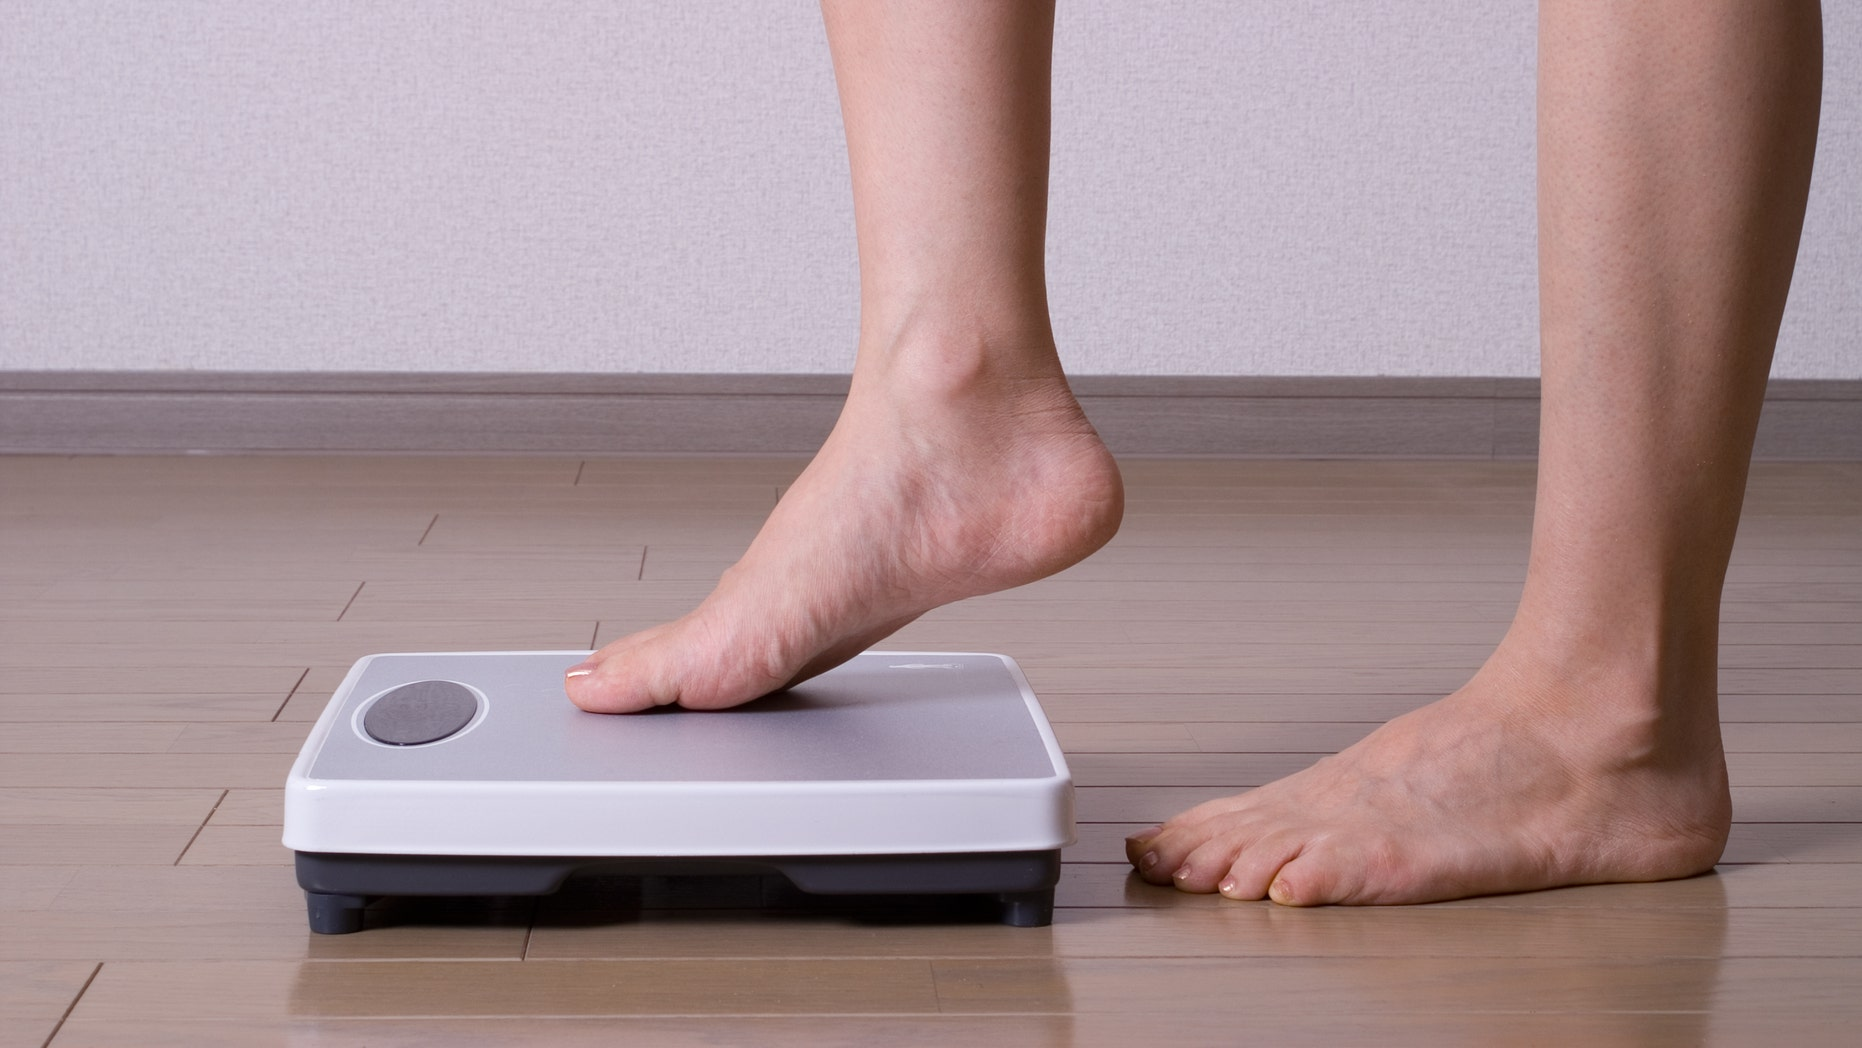 Woman stepping on scales and weighing herself